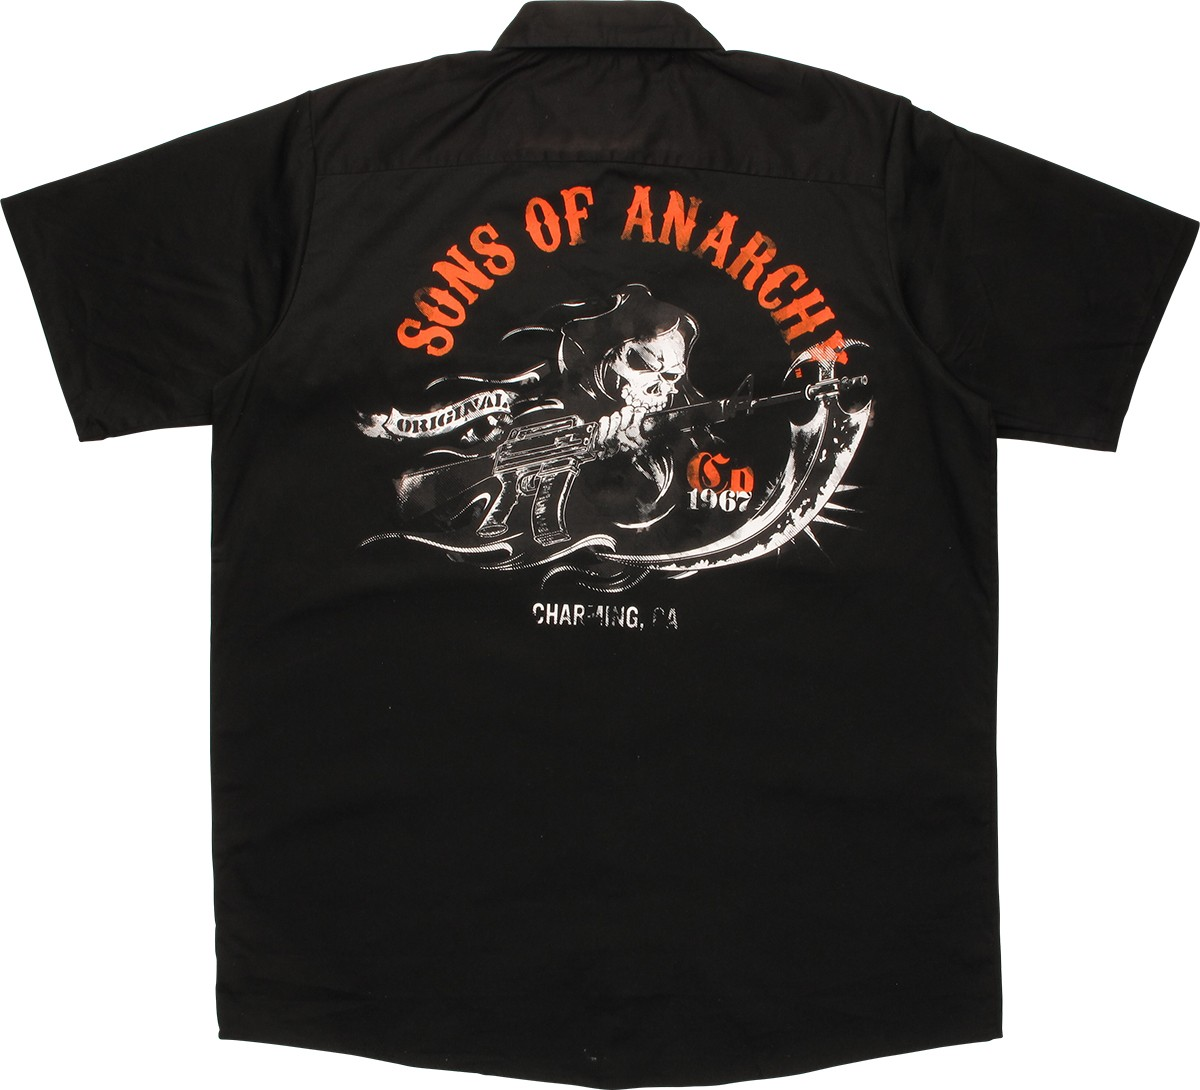 sons of anarchy soa patch work shirt. Black Bedroom Furniture Sets. Home Design Ideas